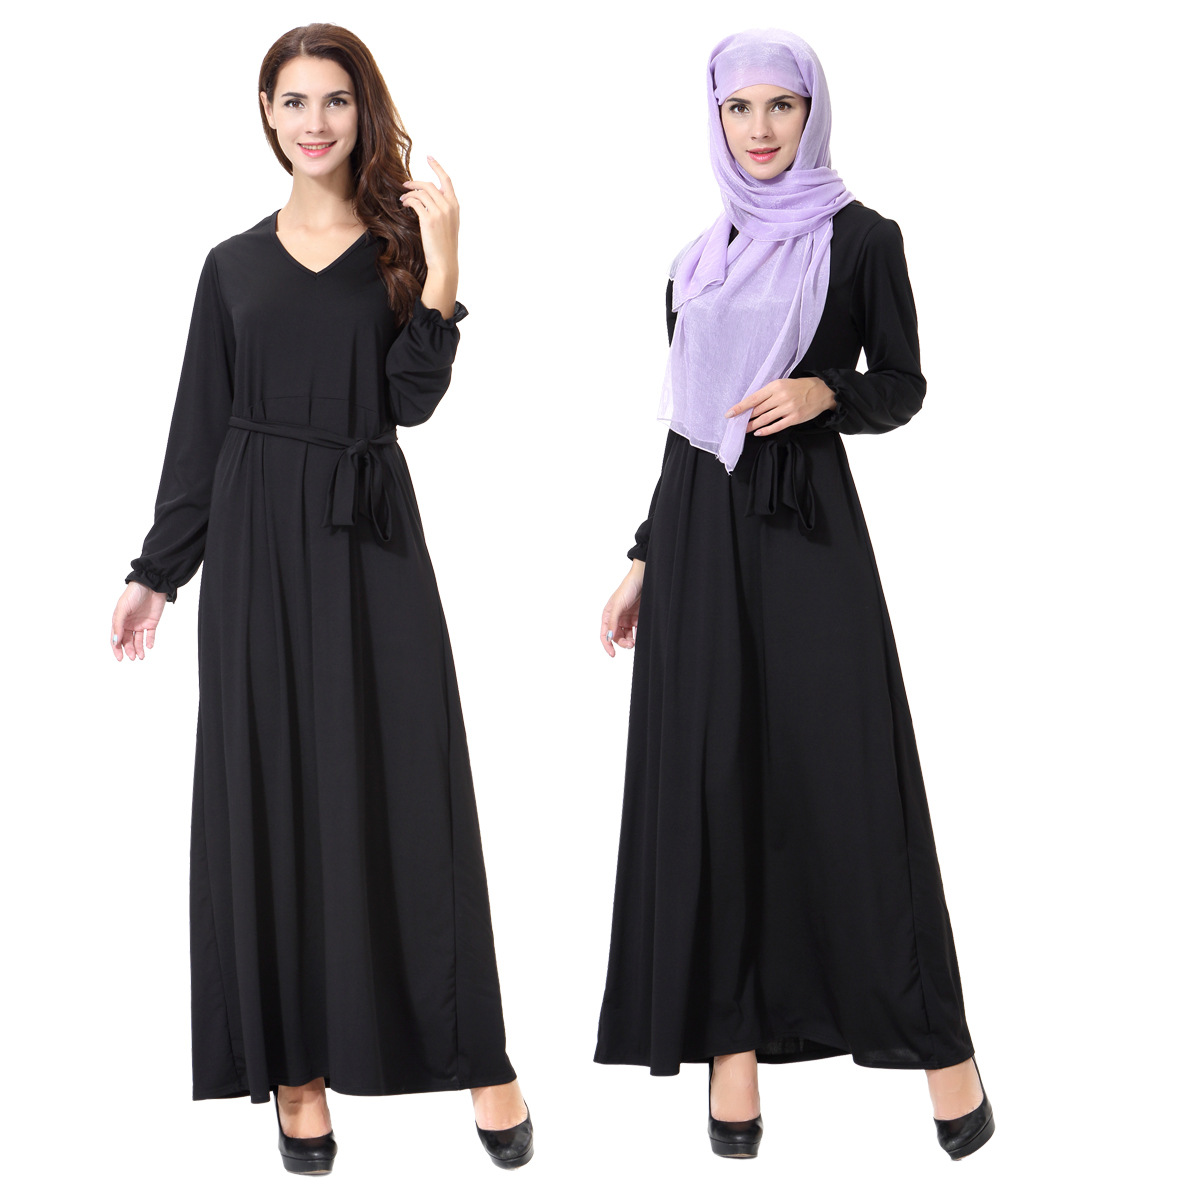 Muslim Arabia Middle East ladies gown, black dress abaya